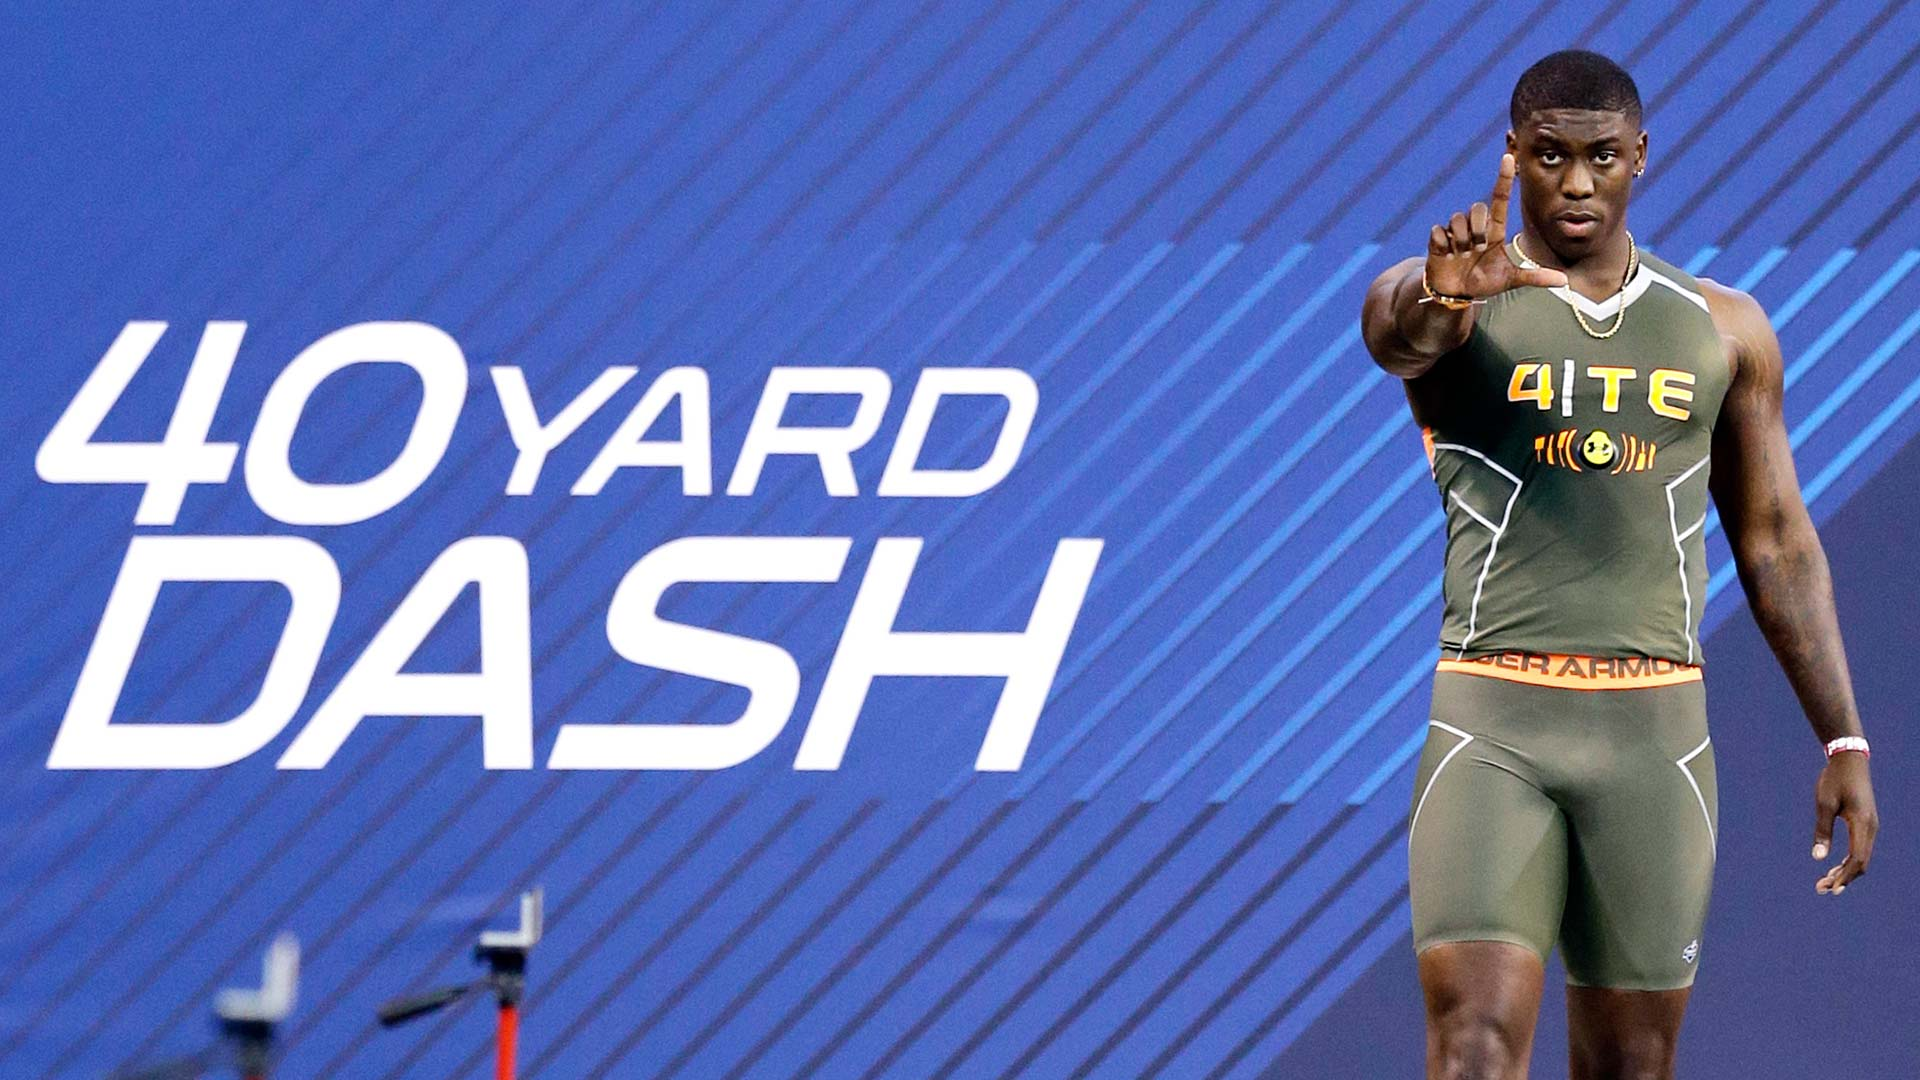 2014 Nfl Combine Results Tight Ends Run The 40 Yard Dash Sporting